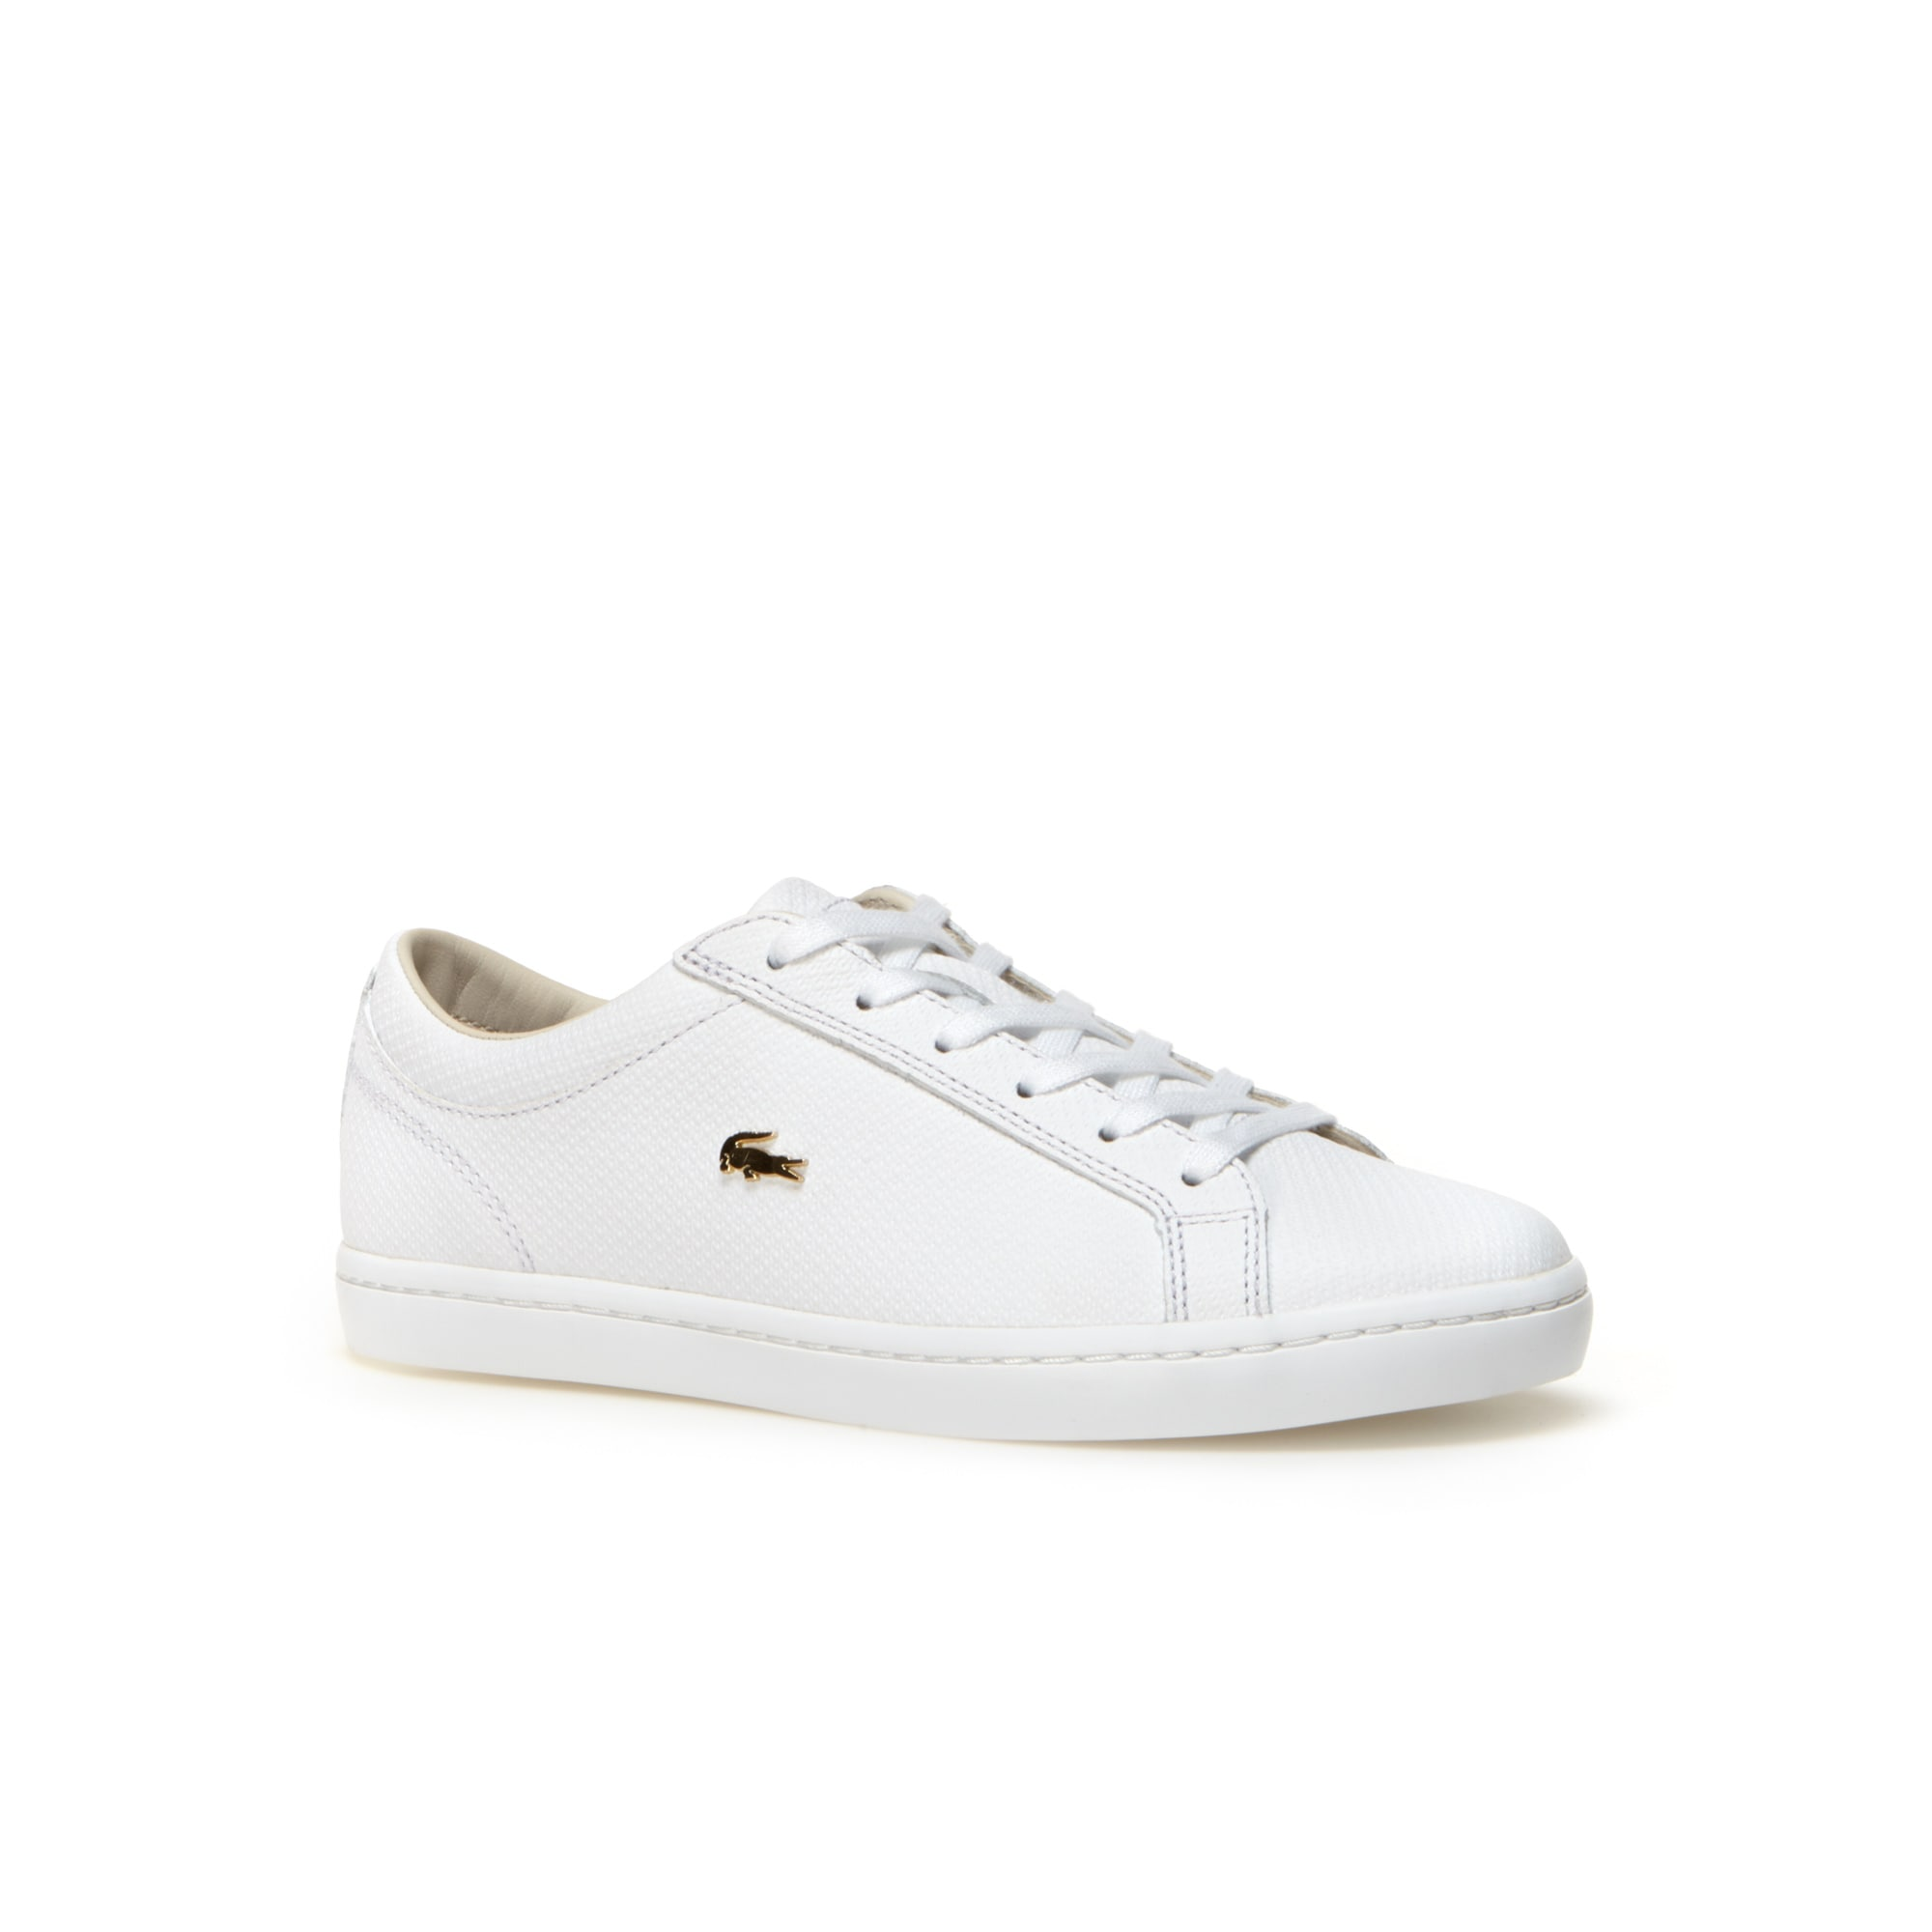 Collection Femme Femme Lacoste Chaussures Chaussures Lacoste Chaussures Collection qEPwxO